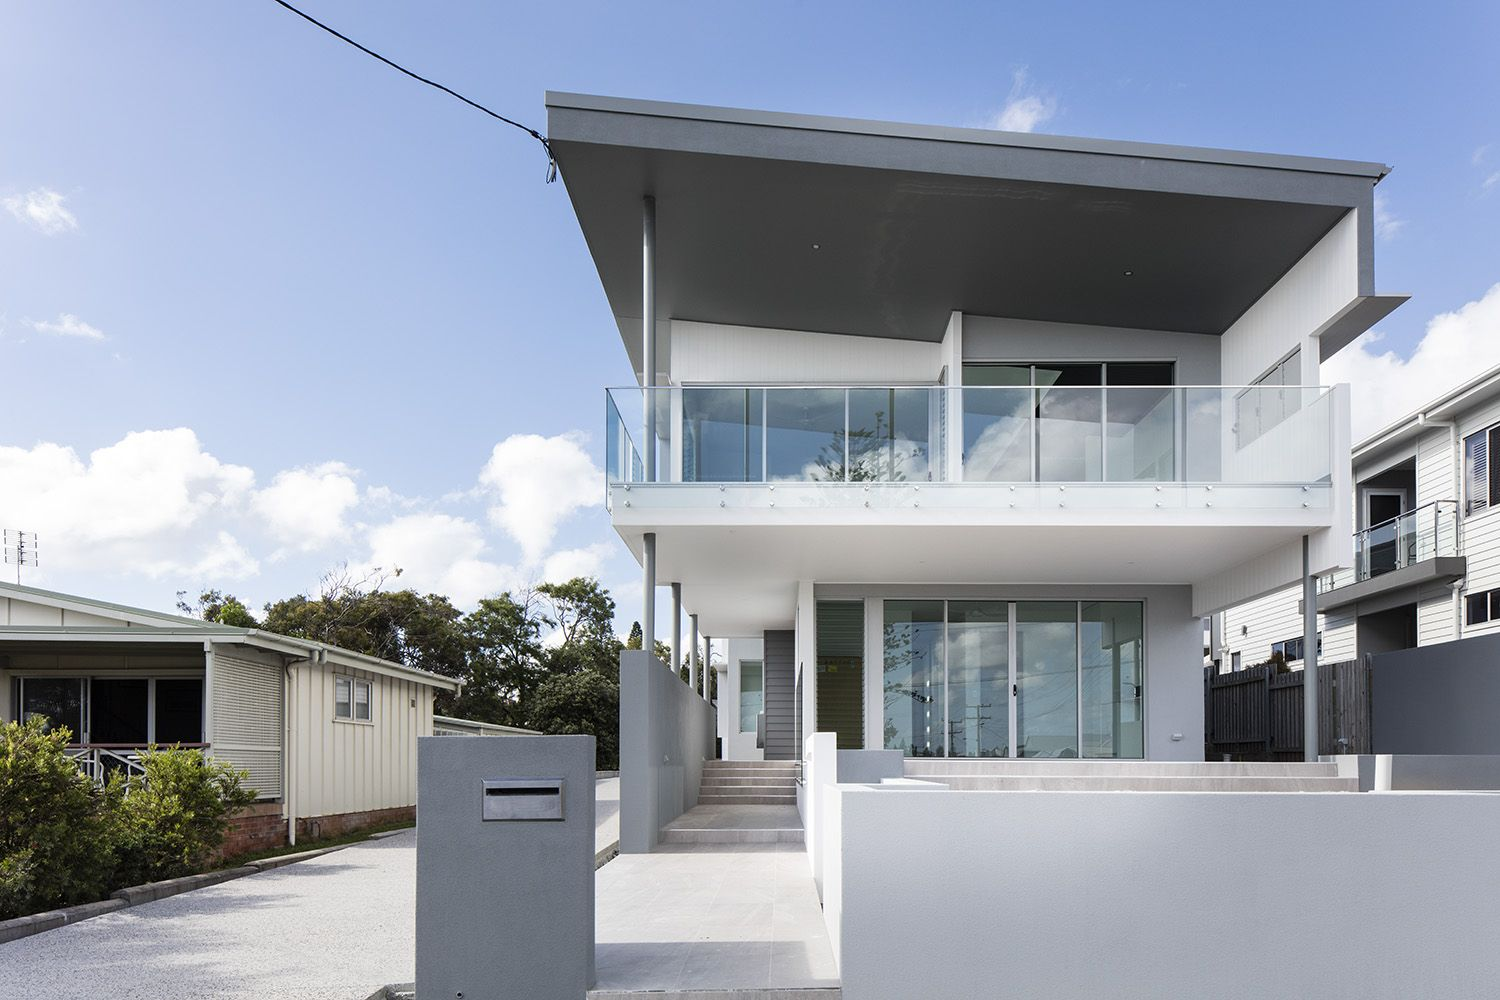 Modern home design by immackulate designer homes the kings beach project located on sunshine coast qld australia also rh pinterest